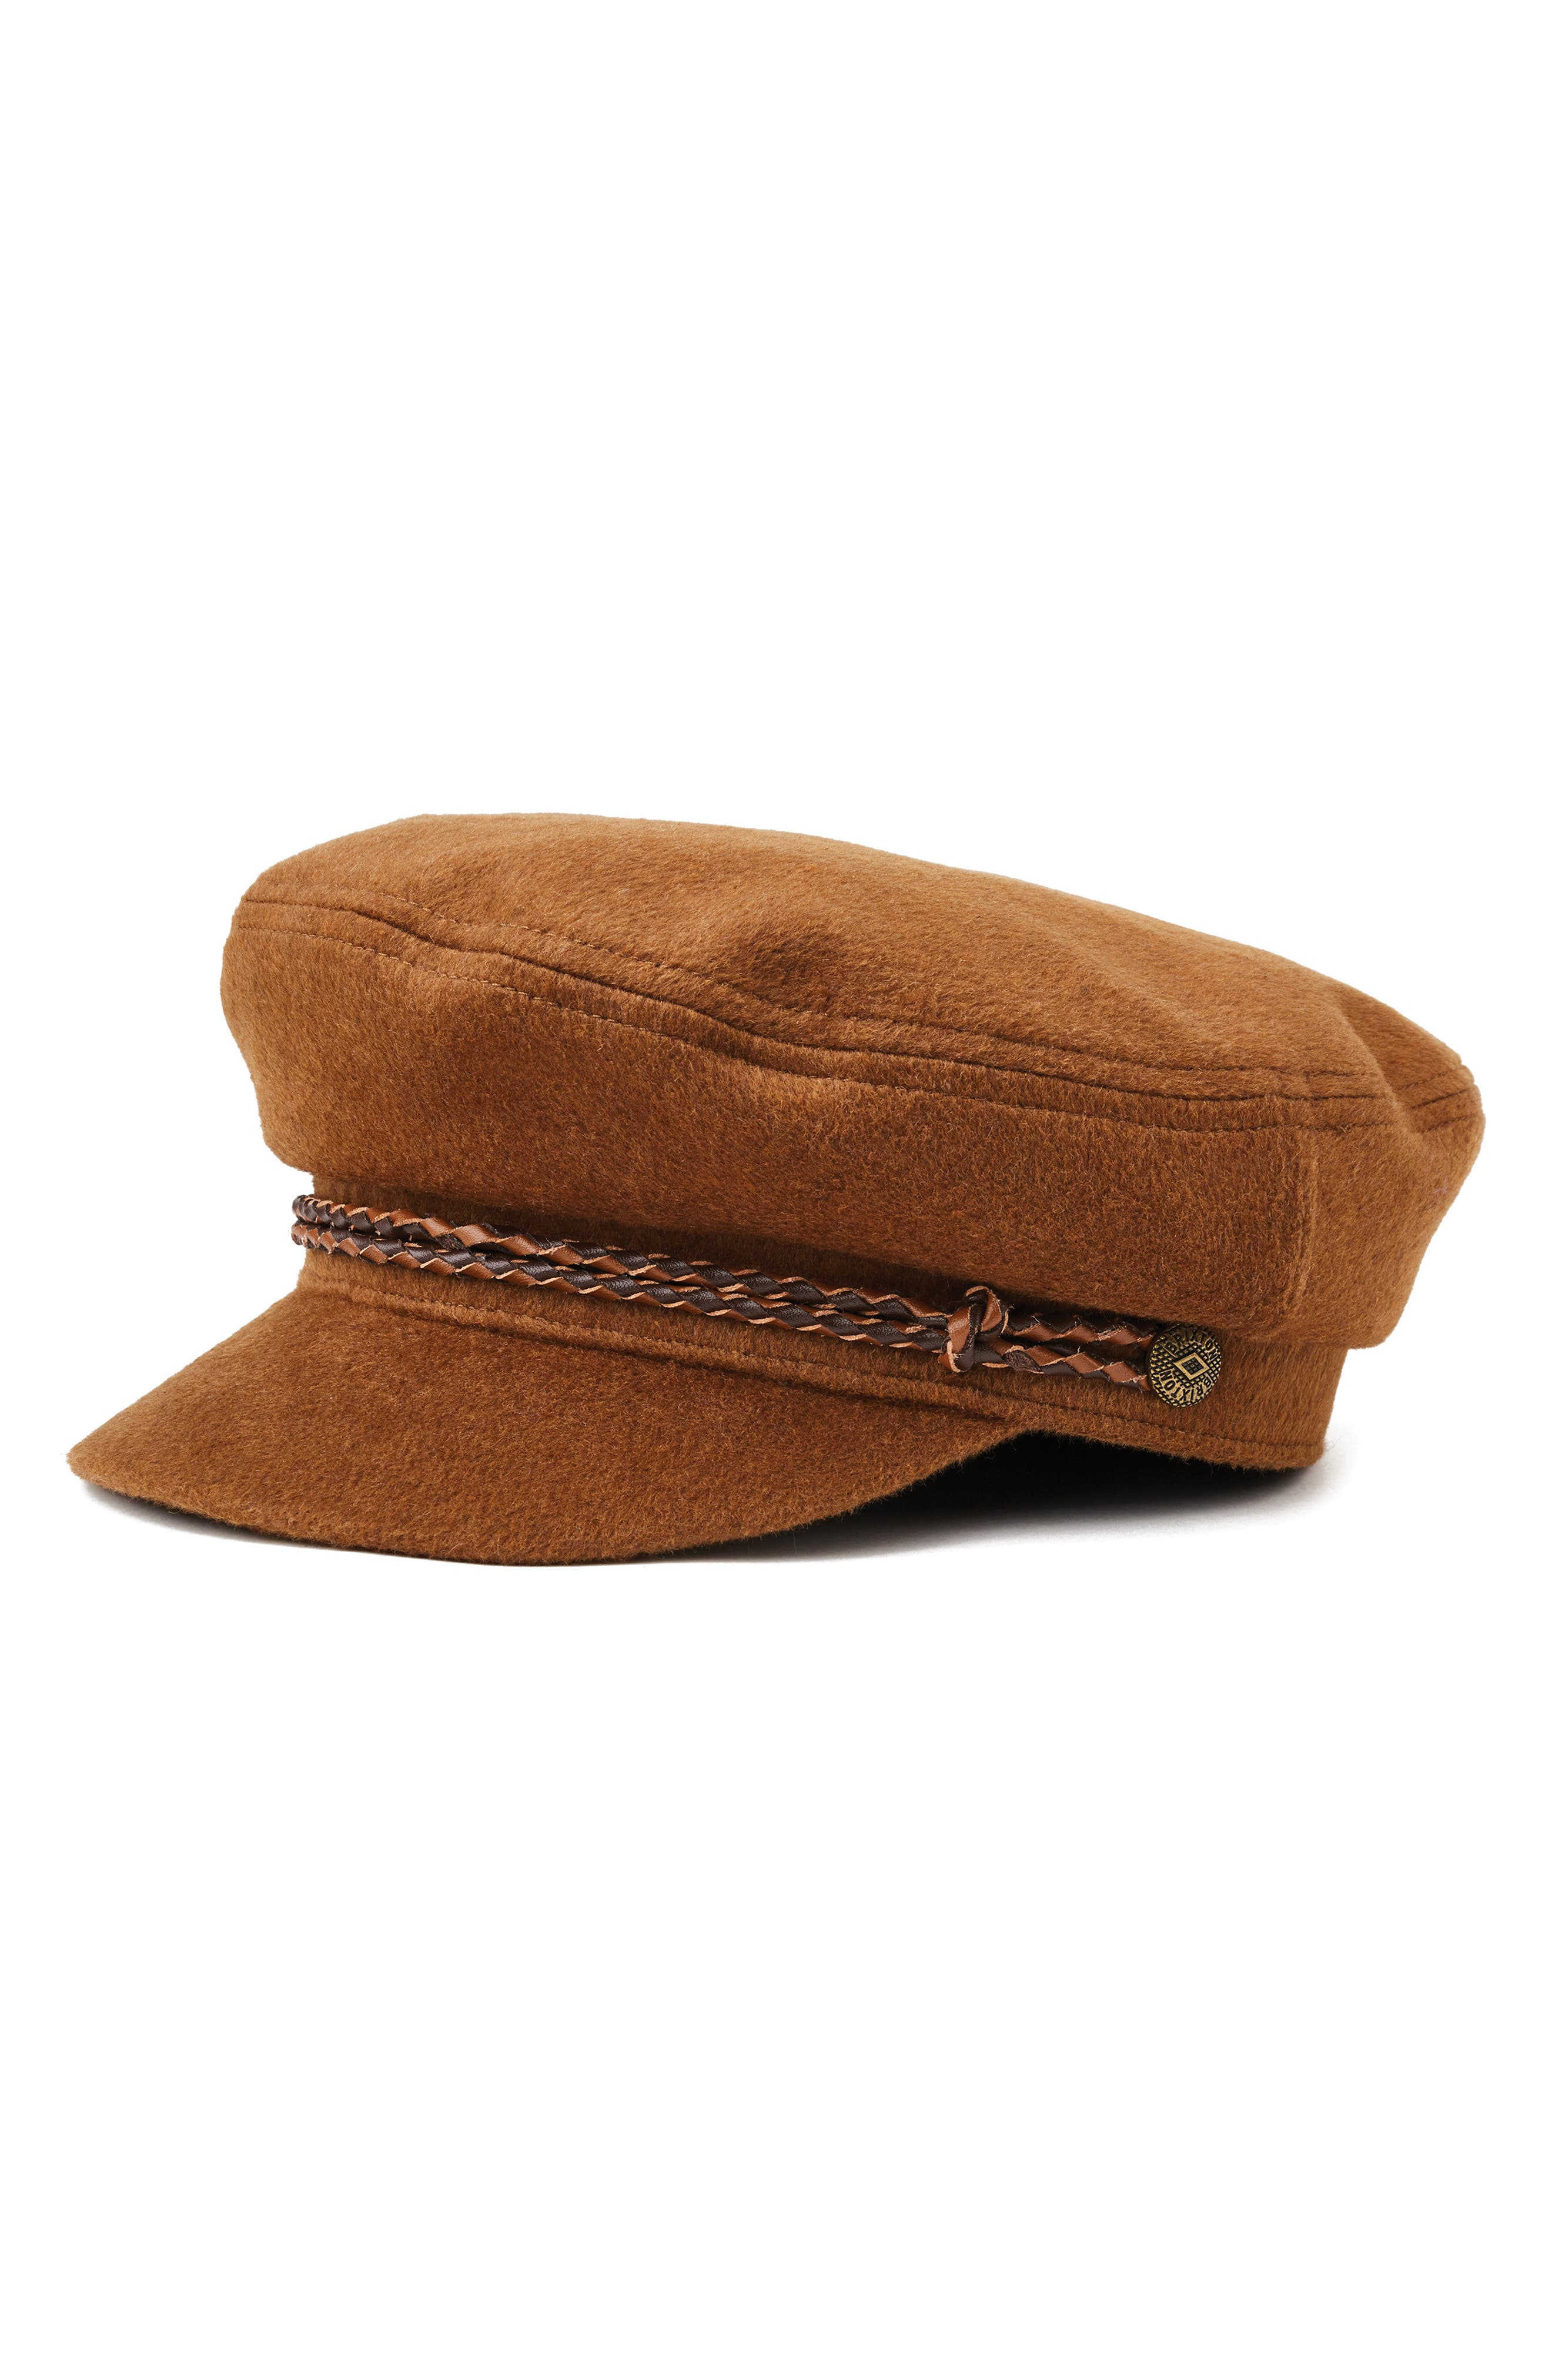 Ashland Fisherman Cap,                         Main,                         color, COFFEE